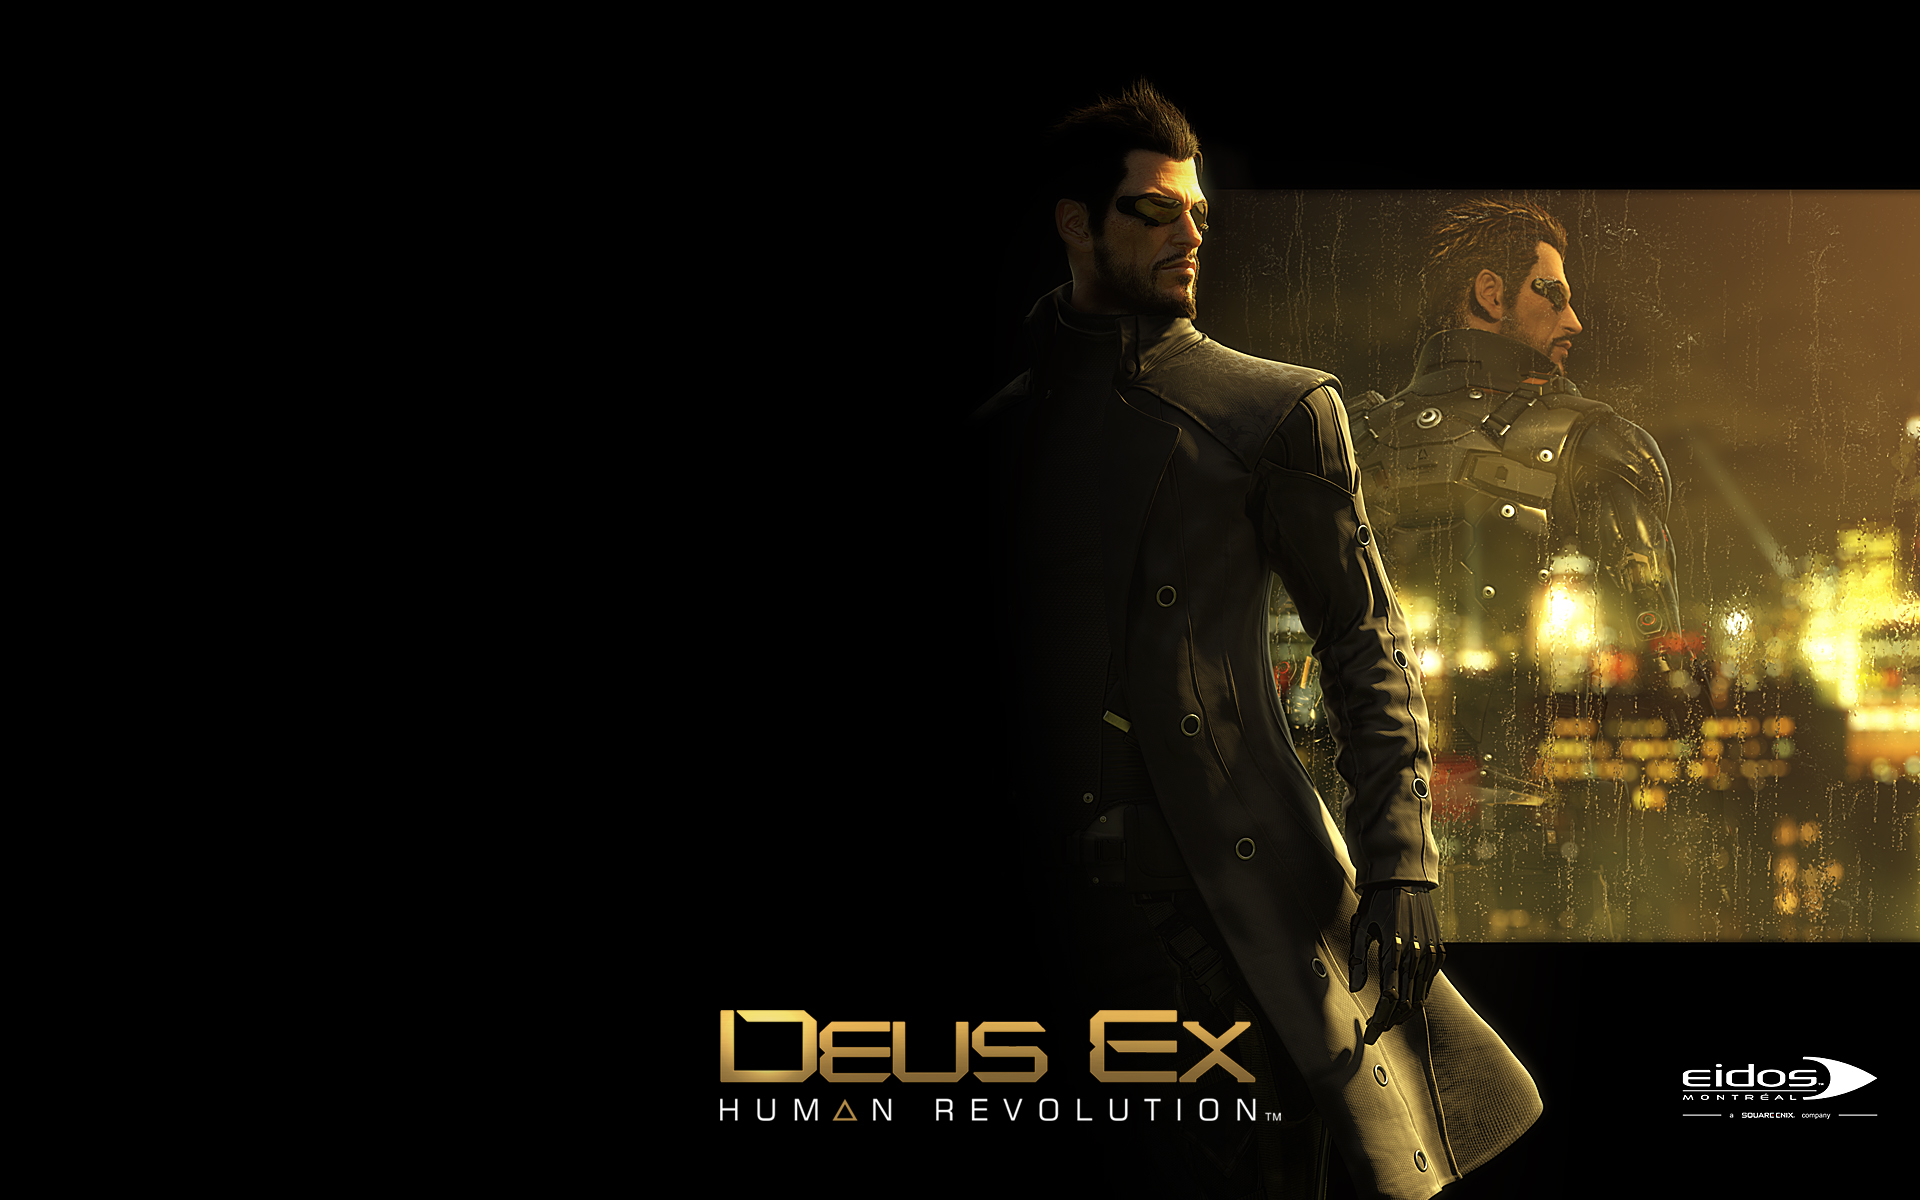 deus ex  human revolution is a